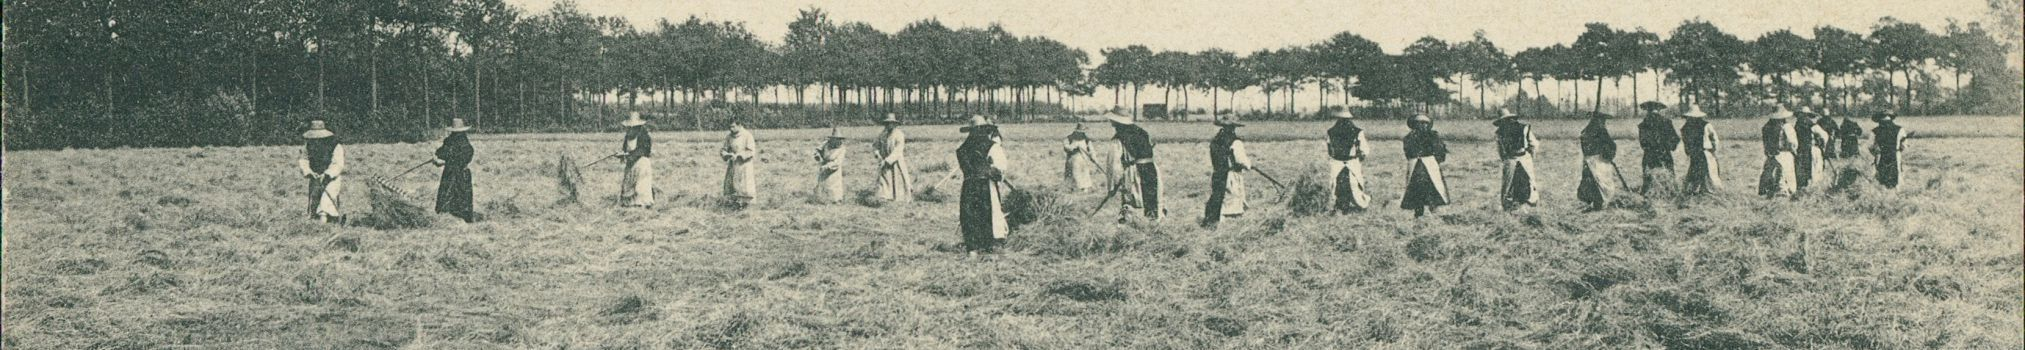 Trappist monks working in the field.